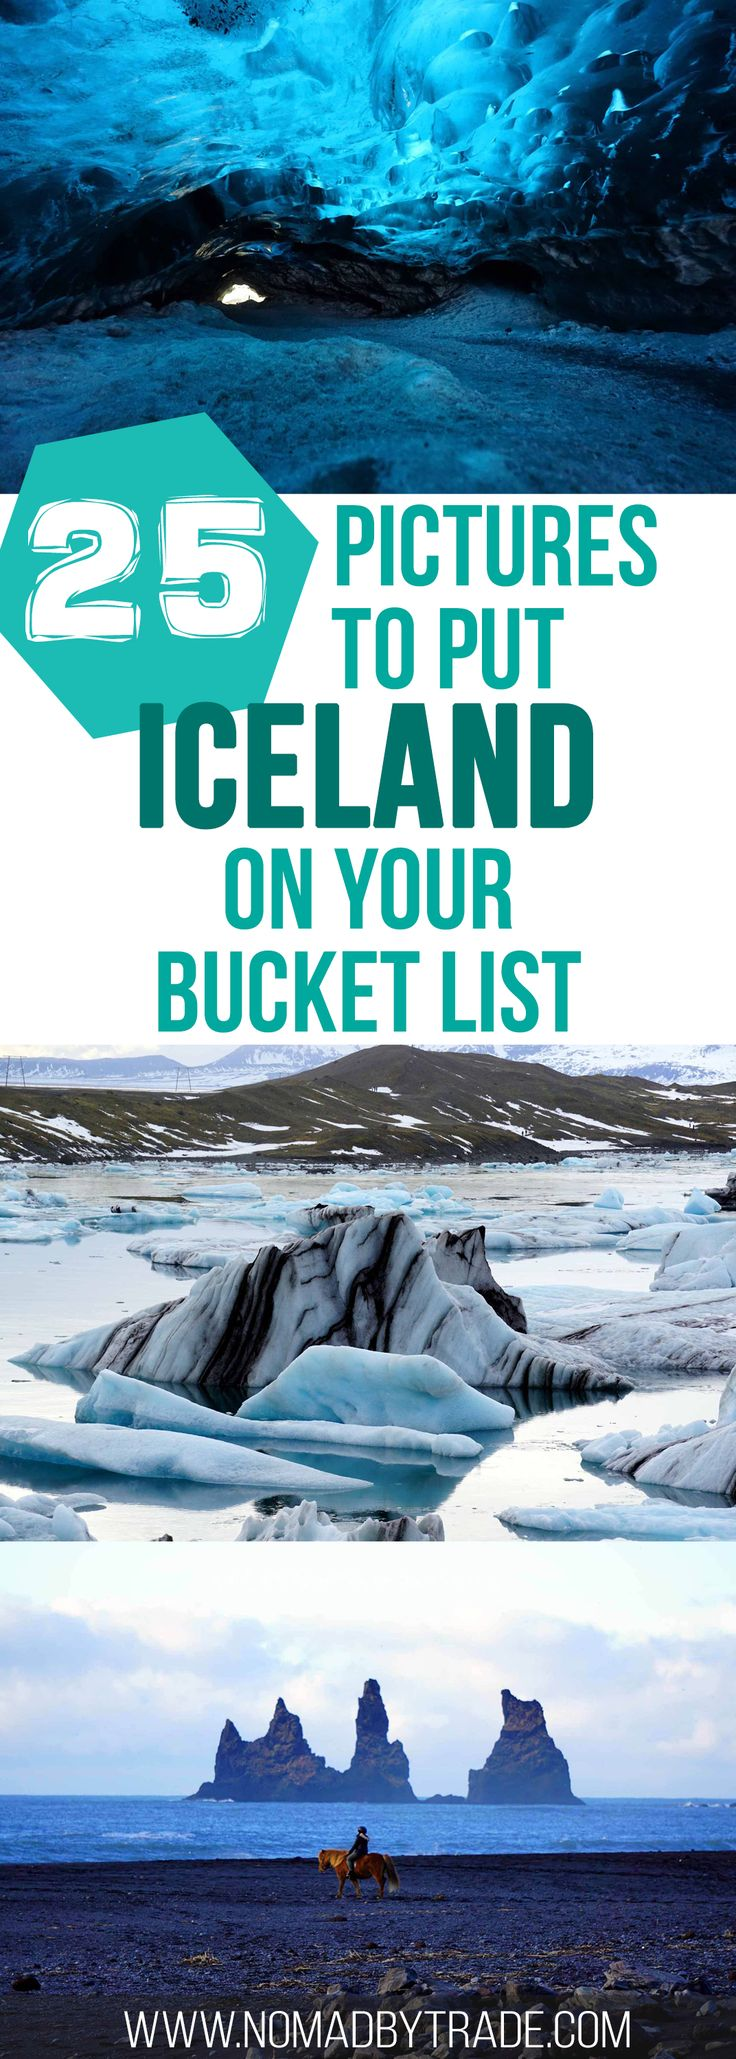 25 photos to put Iceland on your winter bucket list. Includes the Golden Circle, Blue Lagoon, Jokulsarlon, ice cave, and the Northern Lights. #Iceland | #GoldenCircle | #WinterInIceland | #Jokulsarlon | #NorthernLights | #RingRoad | #Vik | #DiamondBeach